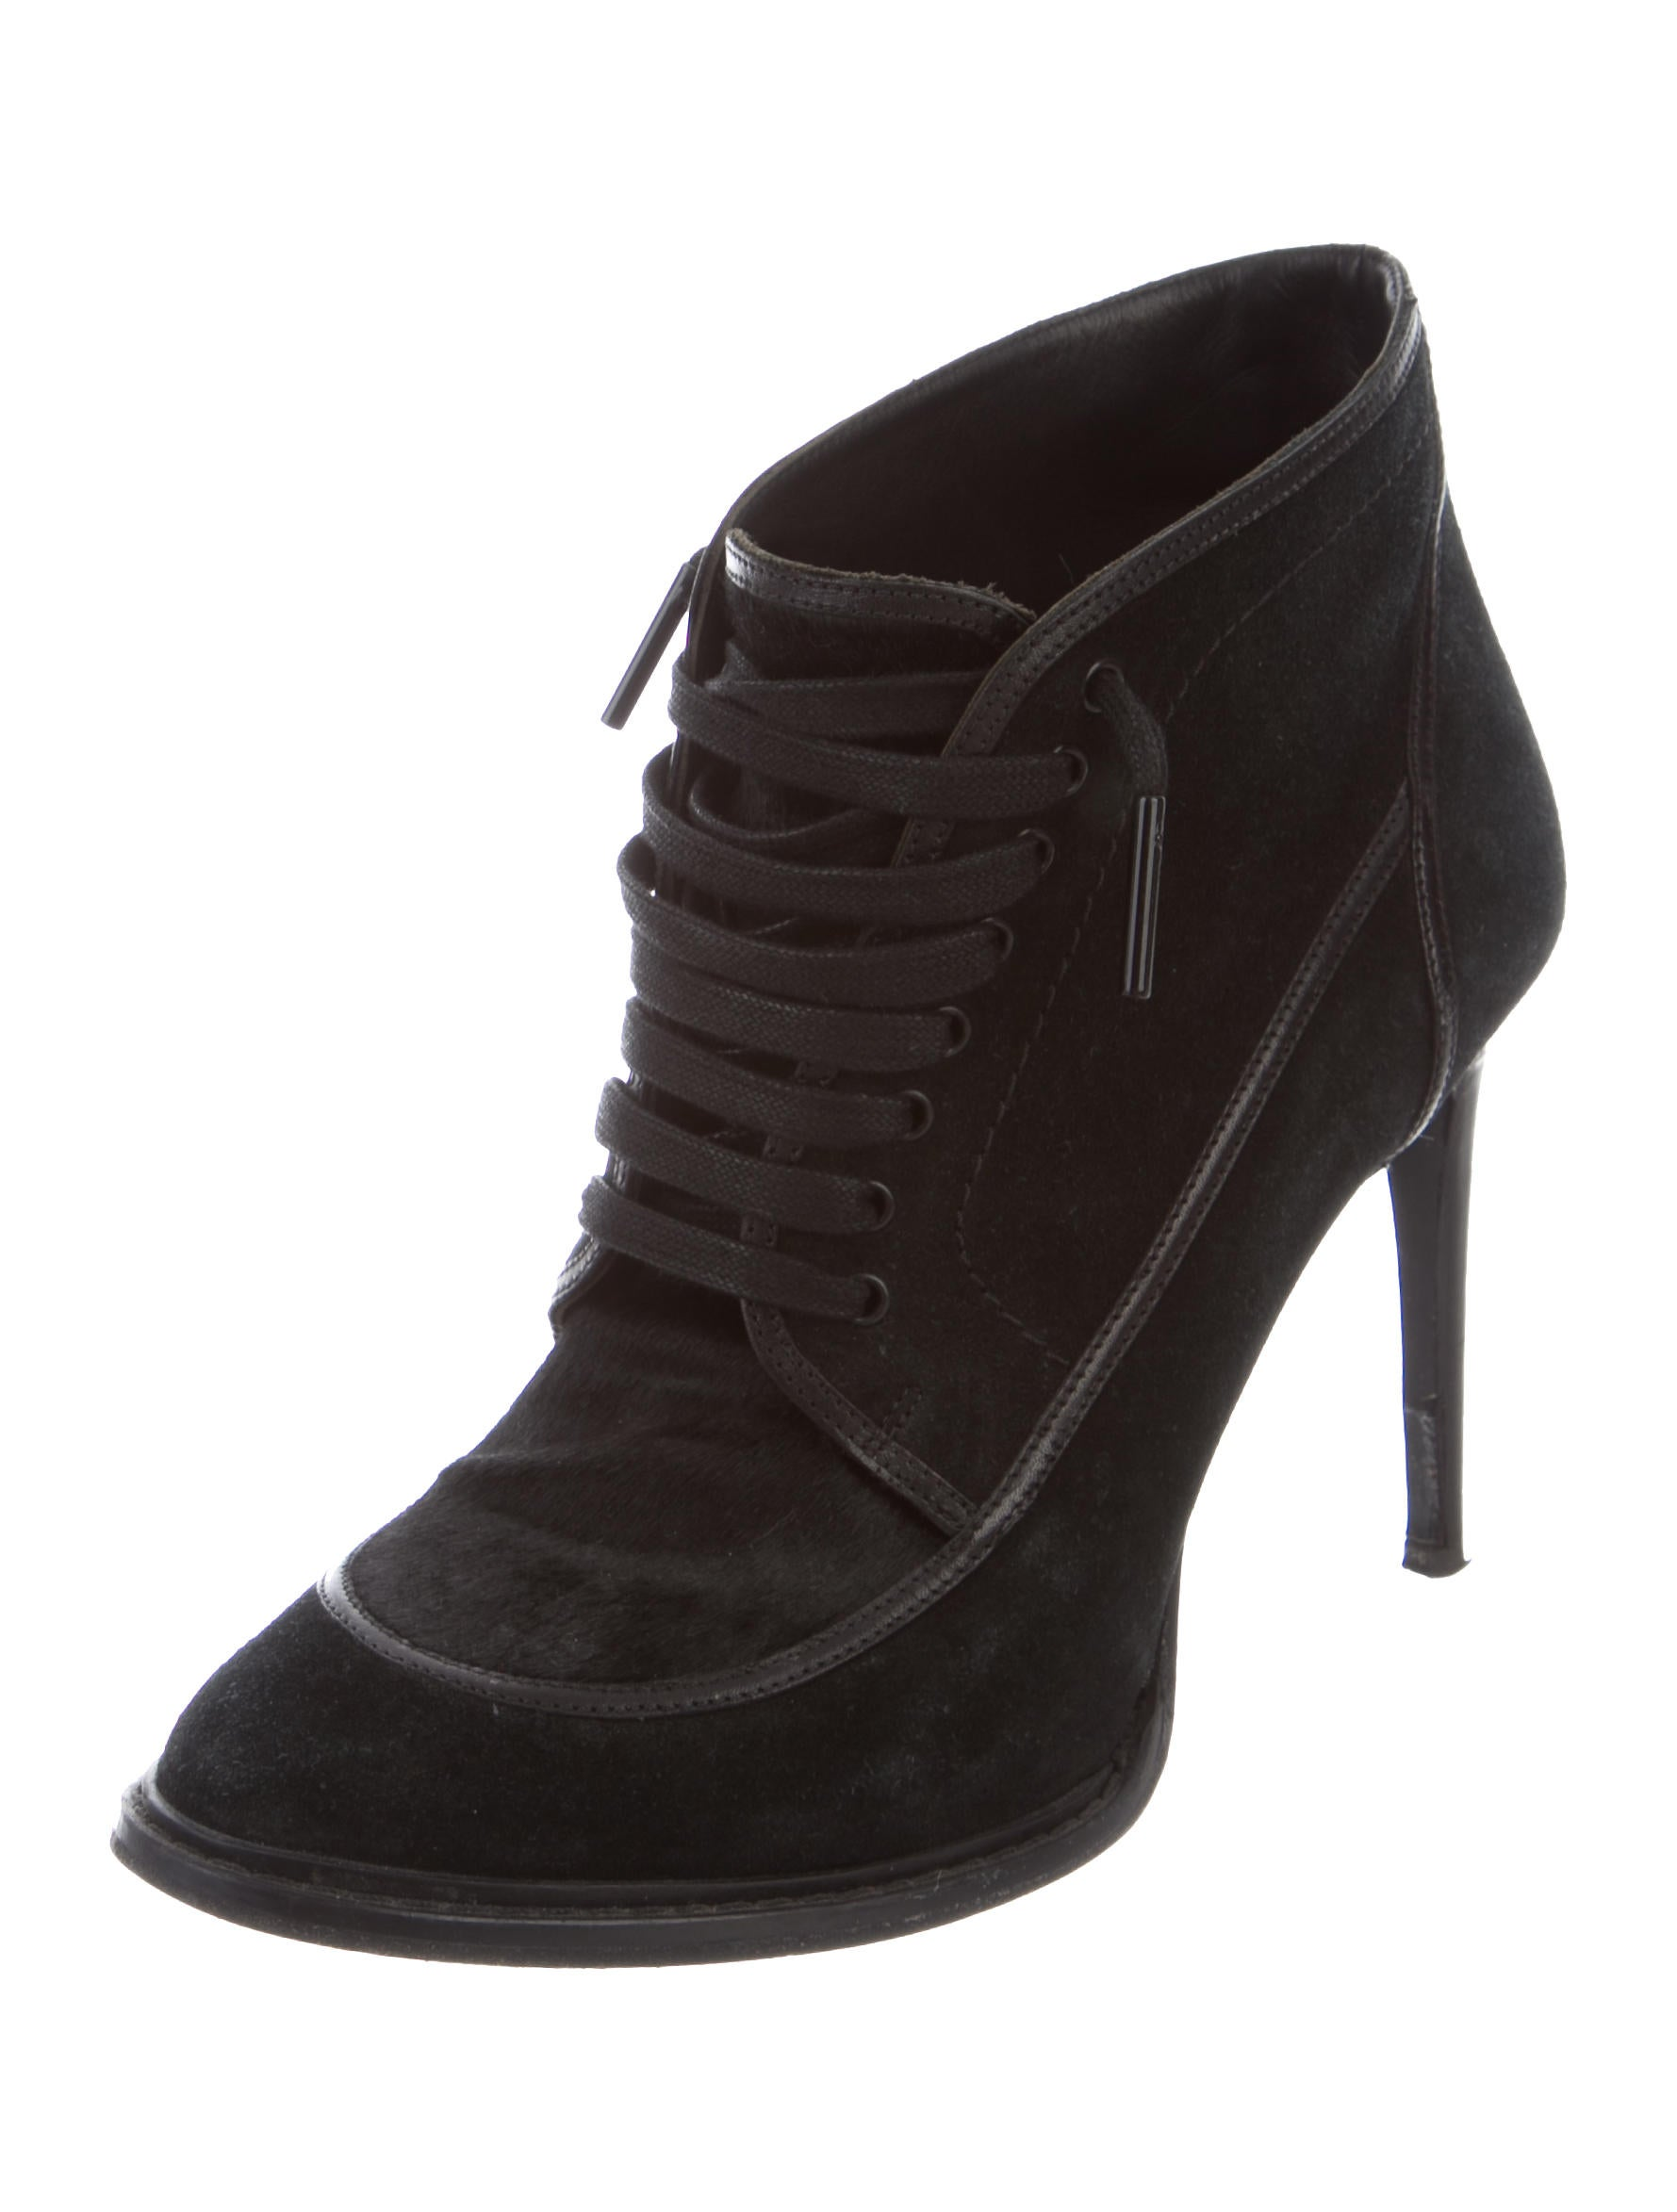 official cheap price Burberry Suede Lace-Up Booties get to buy sale online NEHjgaH0